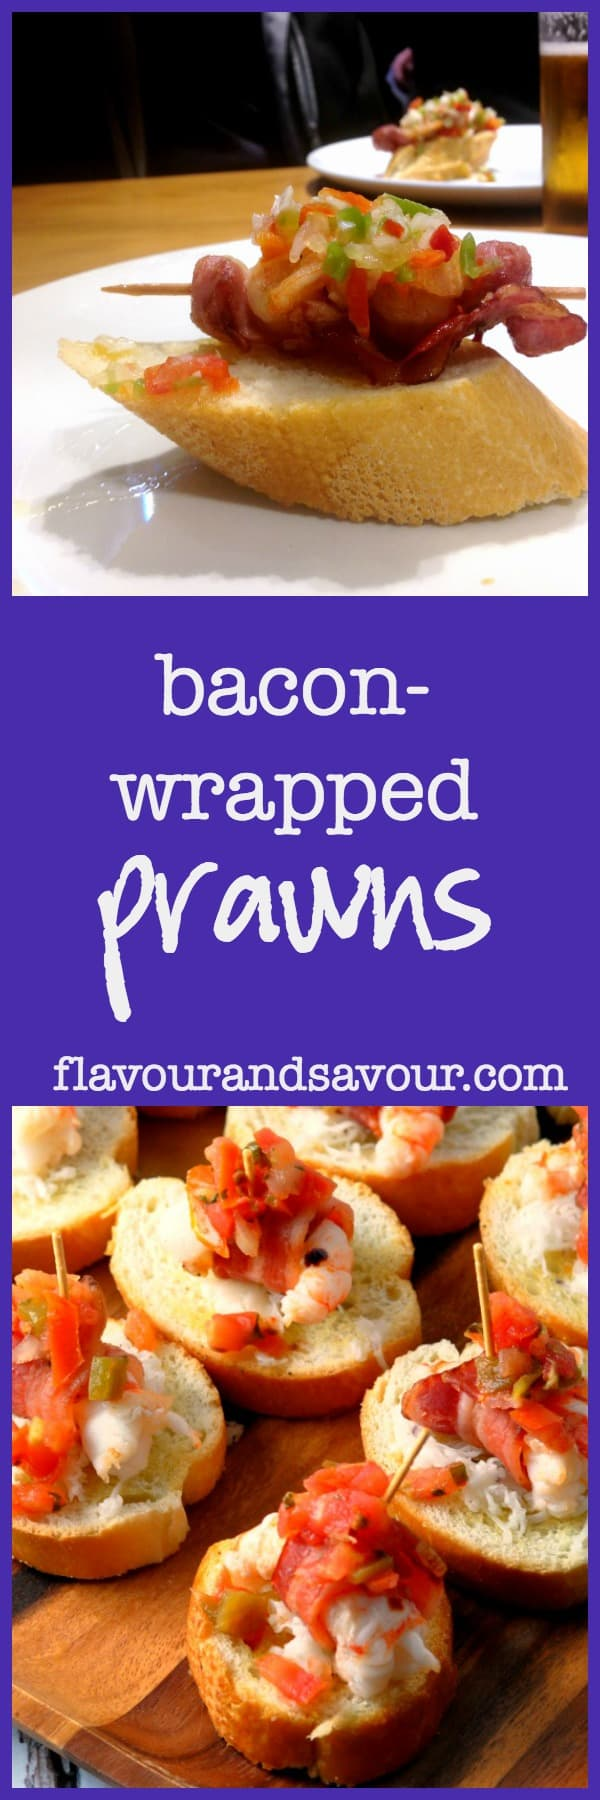 Bacon-Wrapped Prawns with Salsa. First to disappear off the serving platter! |www.flavourandsavour.com